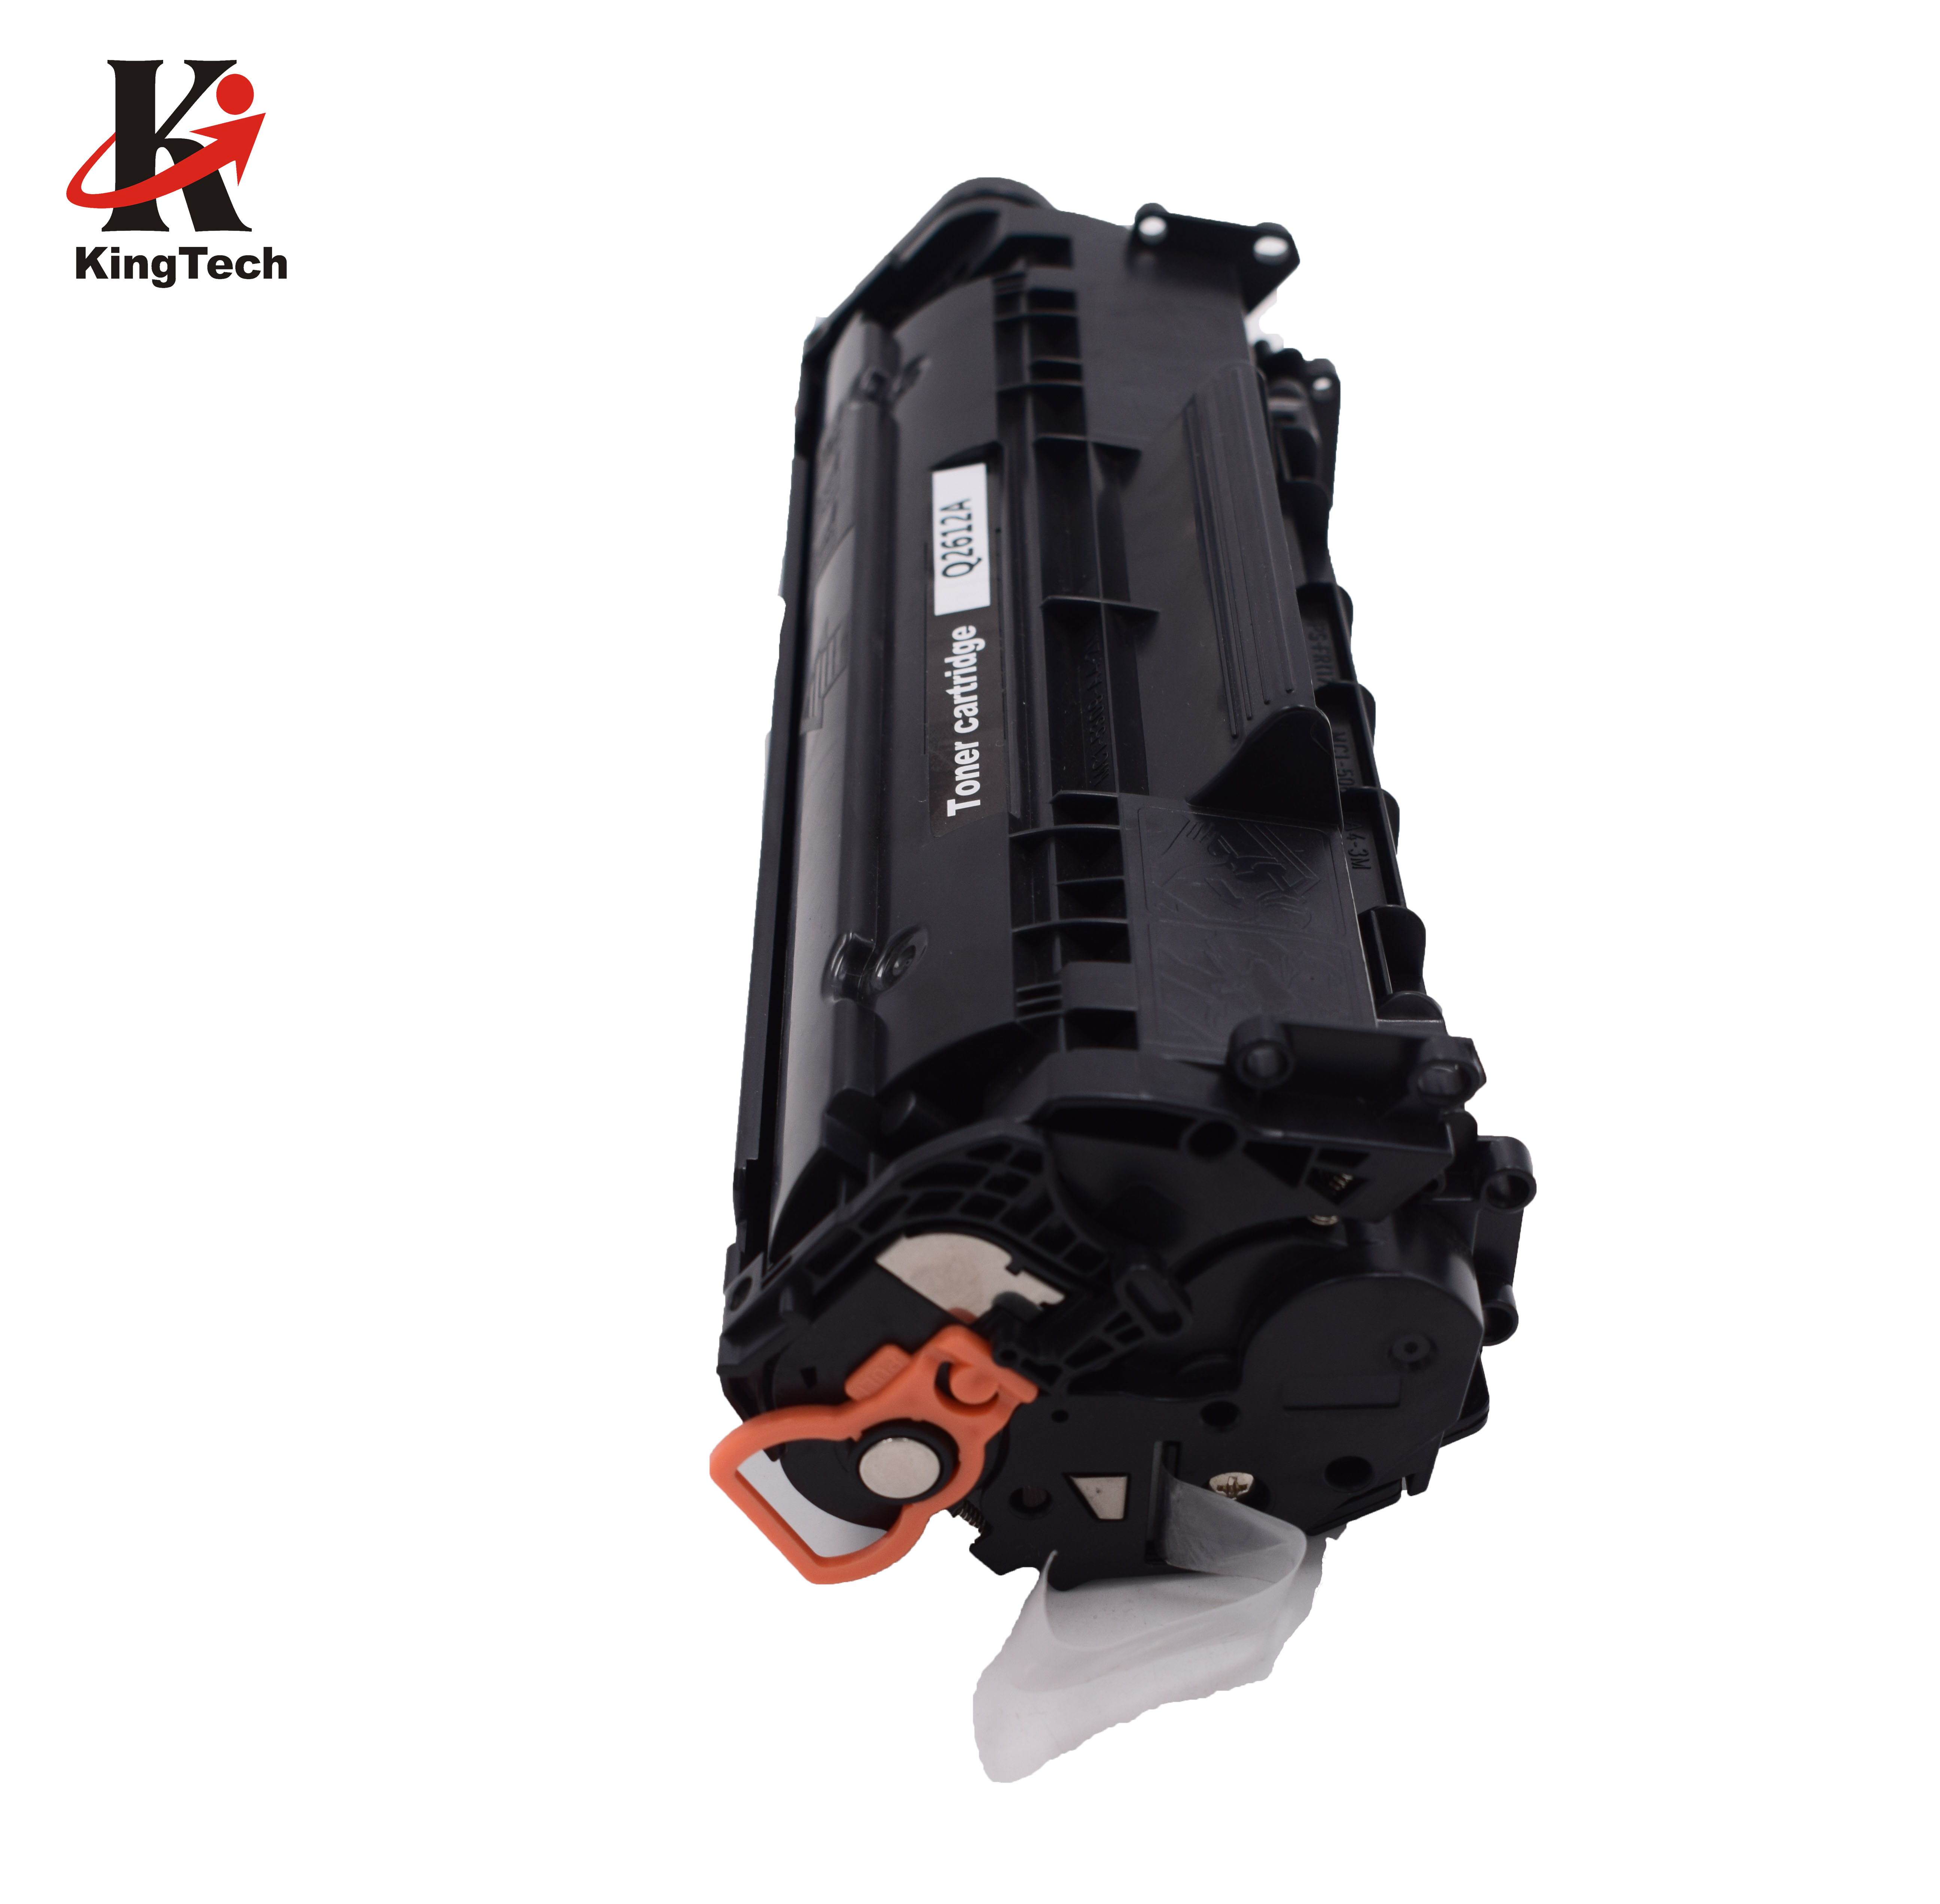 CYMK 4 x HP M 652 M653 MFP M681 M 682// CF450A CF451A CF452A CF453A TONER CHIPS